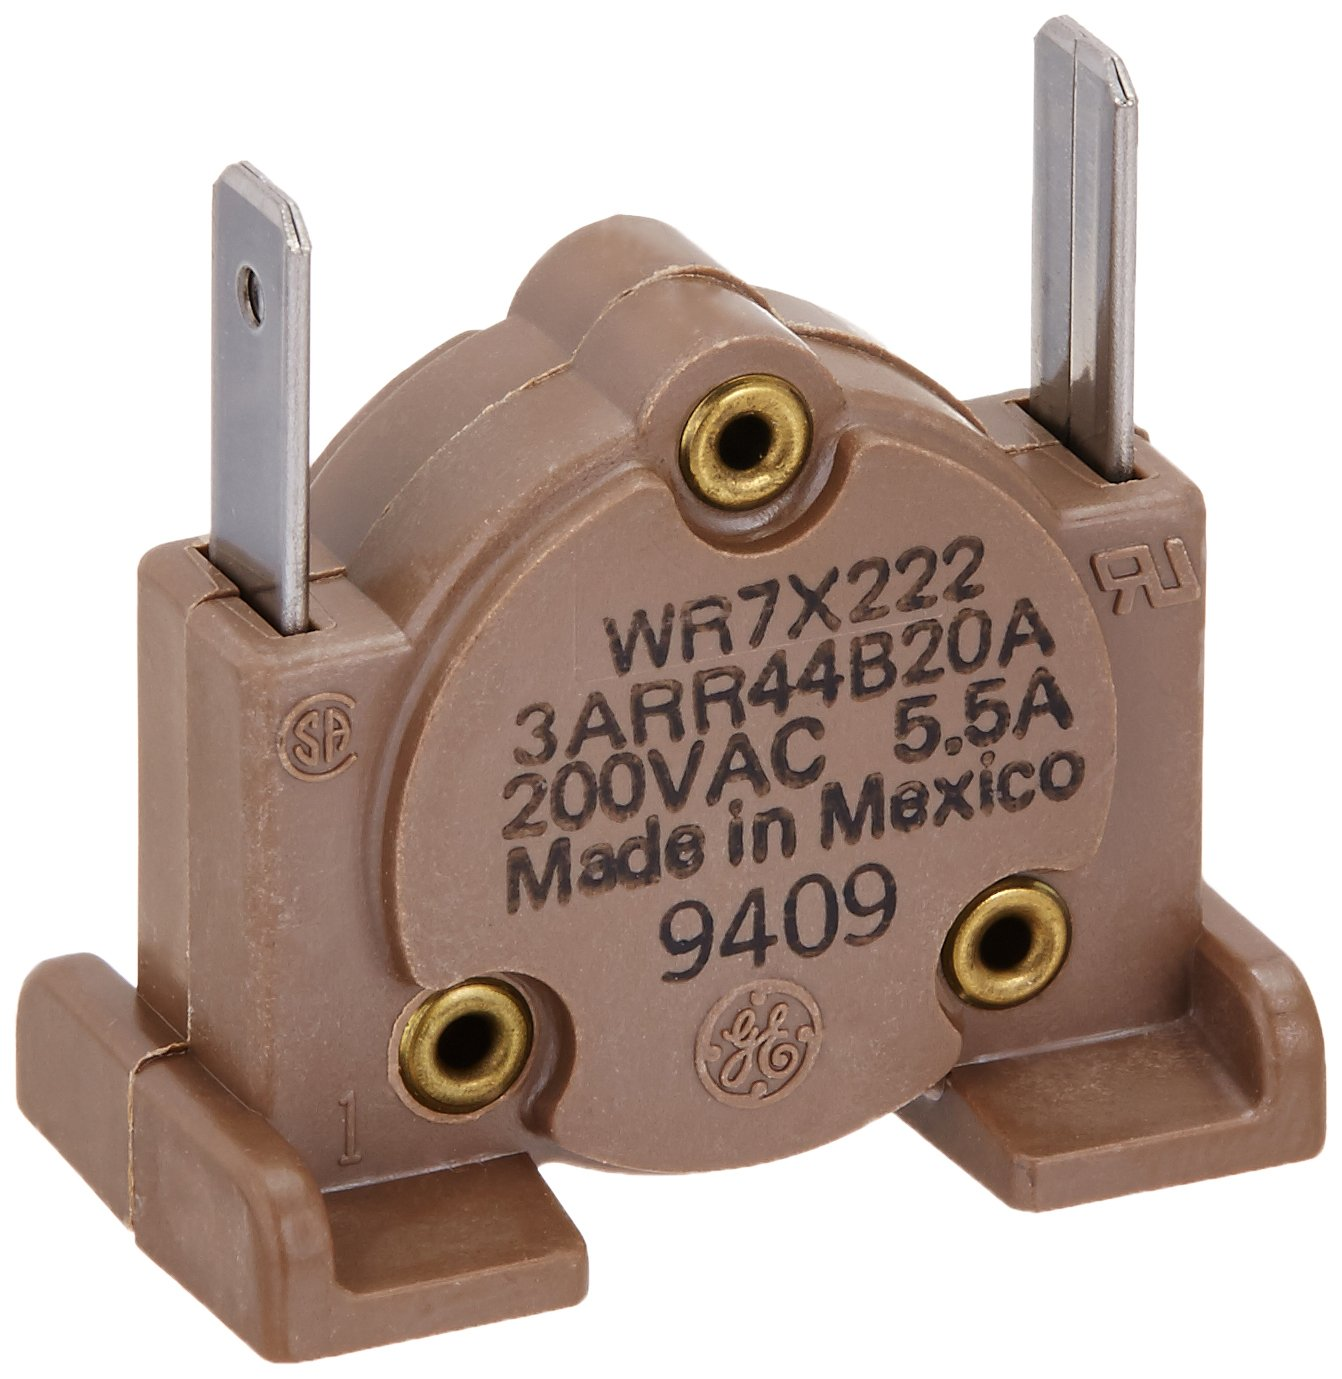 General Electric WR7X222 Refrigerator Start Relay